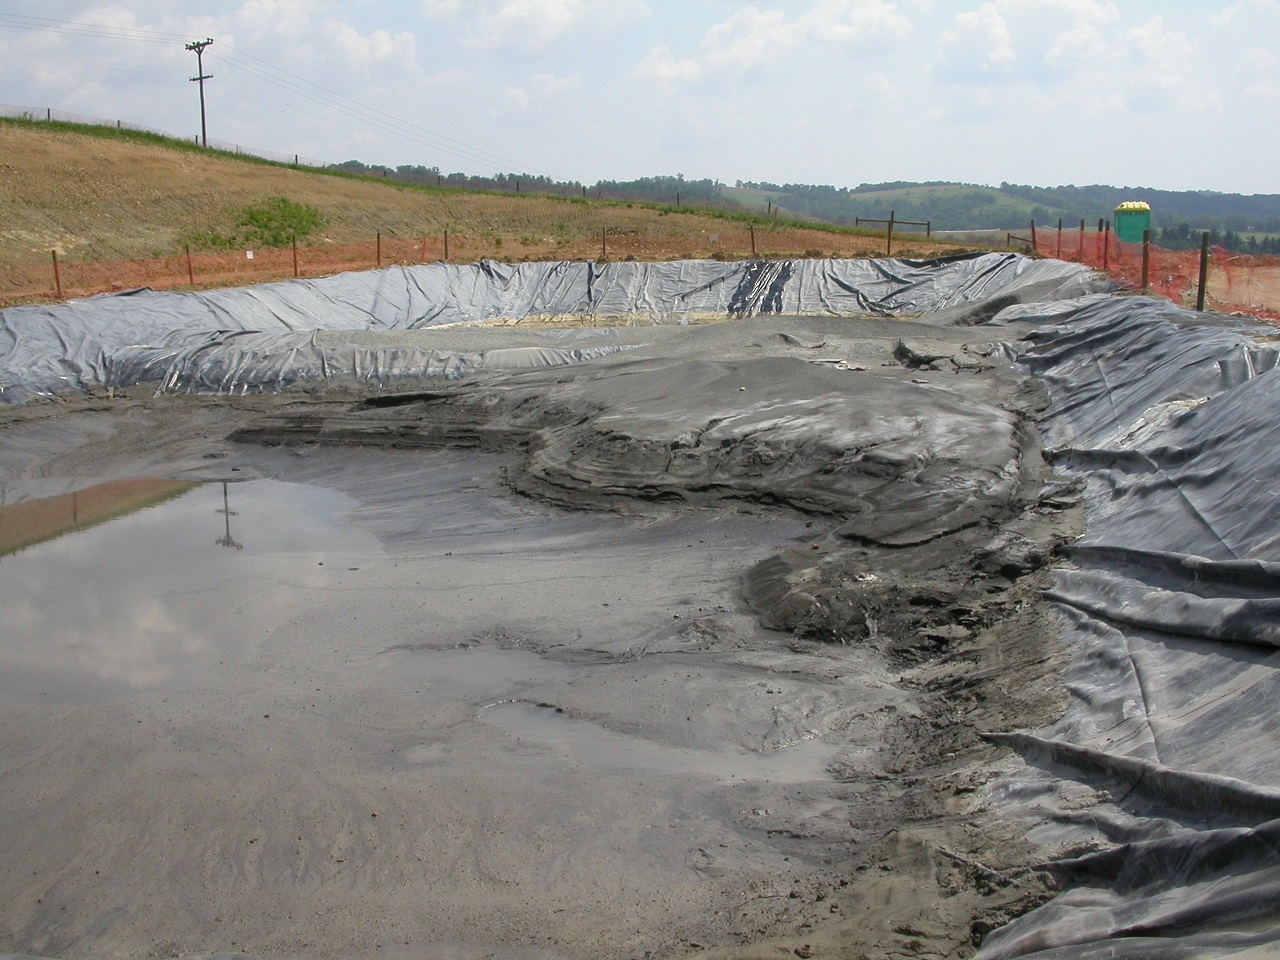 Forums on New Reports on the Health and Economic Impacts of Fracking in Pennsylvania22